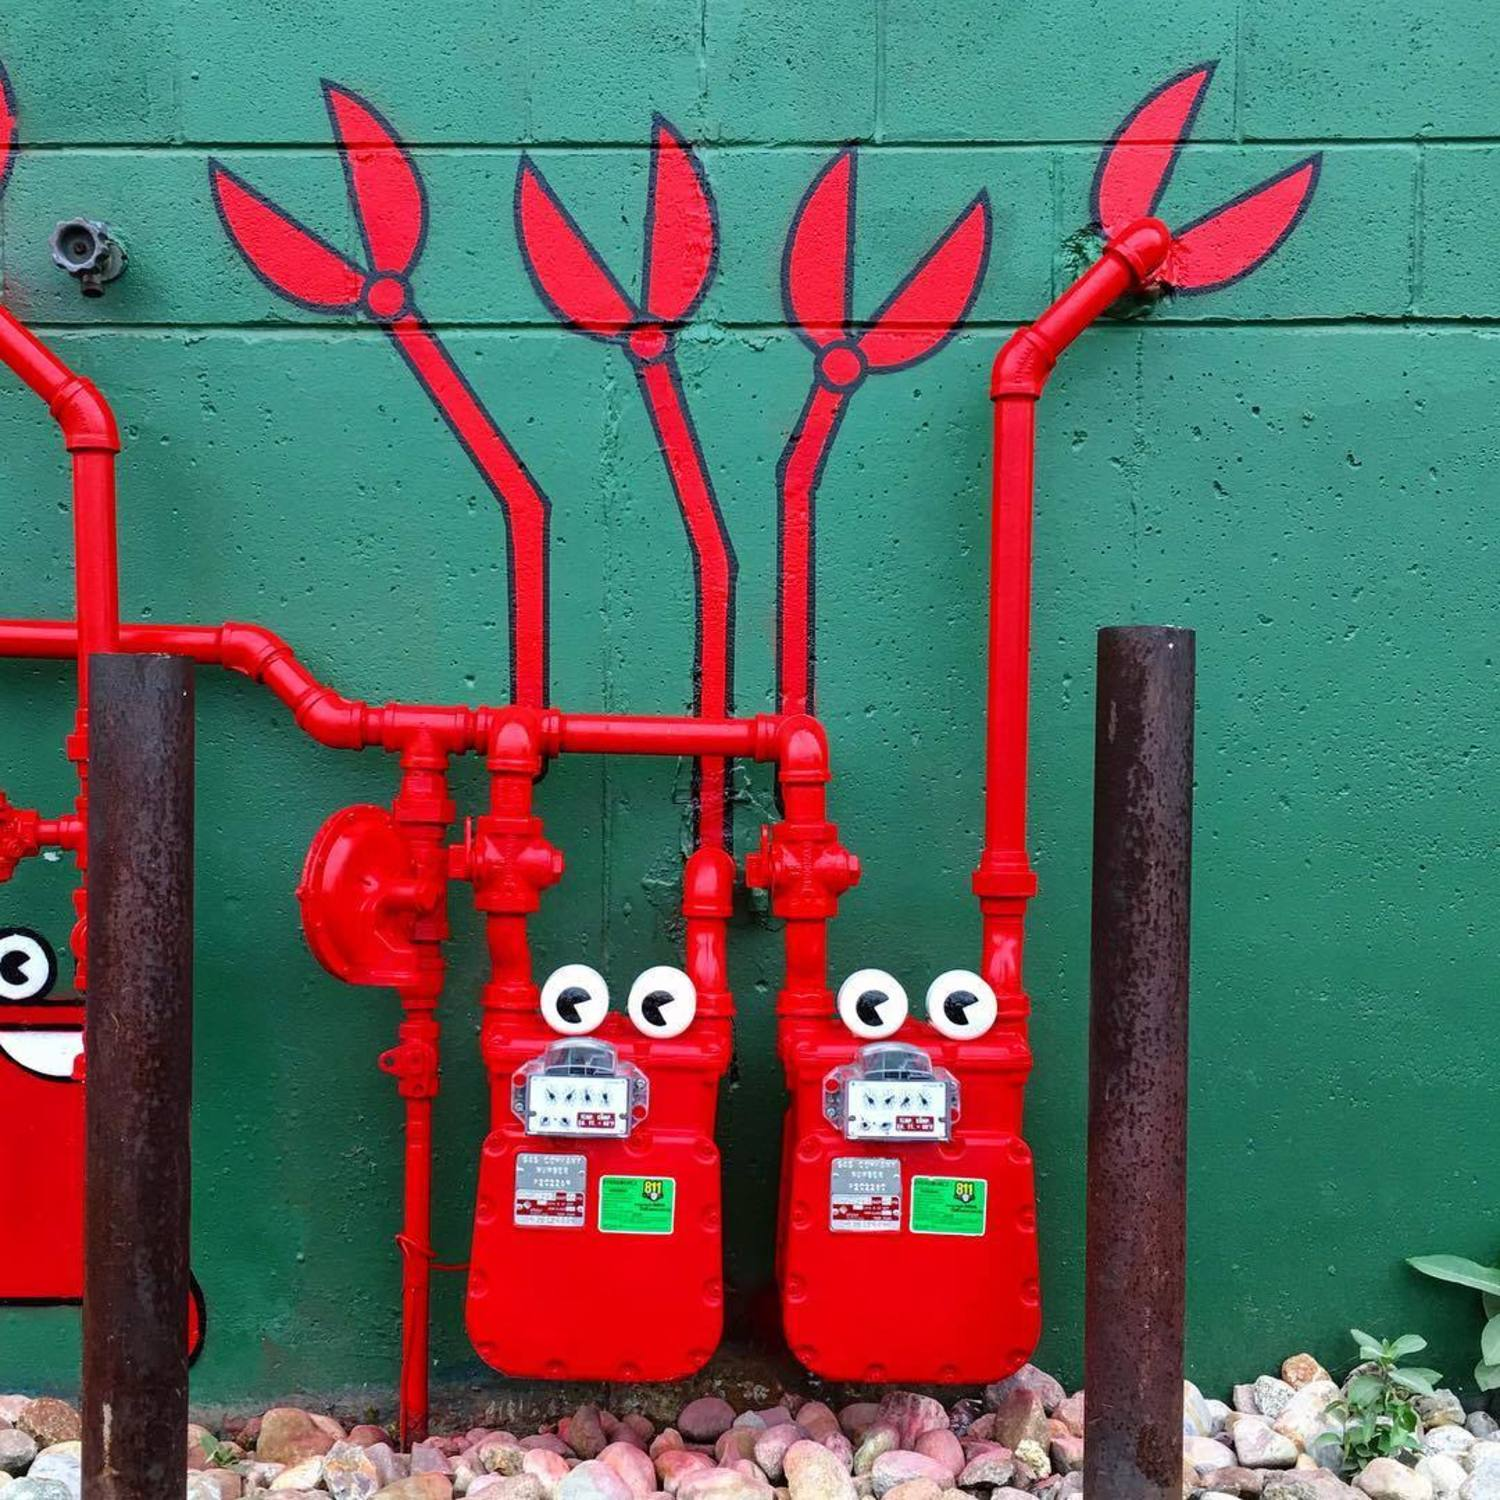 CLAWS UP!! 🦀🦀 #gas #meters #lobsters #🦀 #streetart #🦀🦀 #👀 #lobsterart #tombobnyc #gasmeters #nbma #🐳 #tombob #newbedford #massachusetts